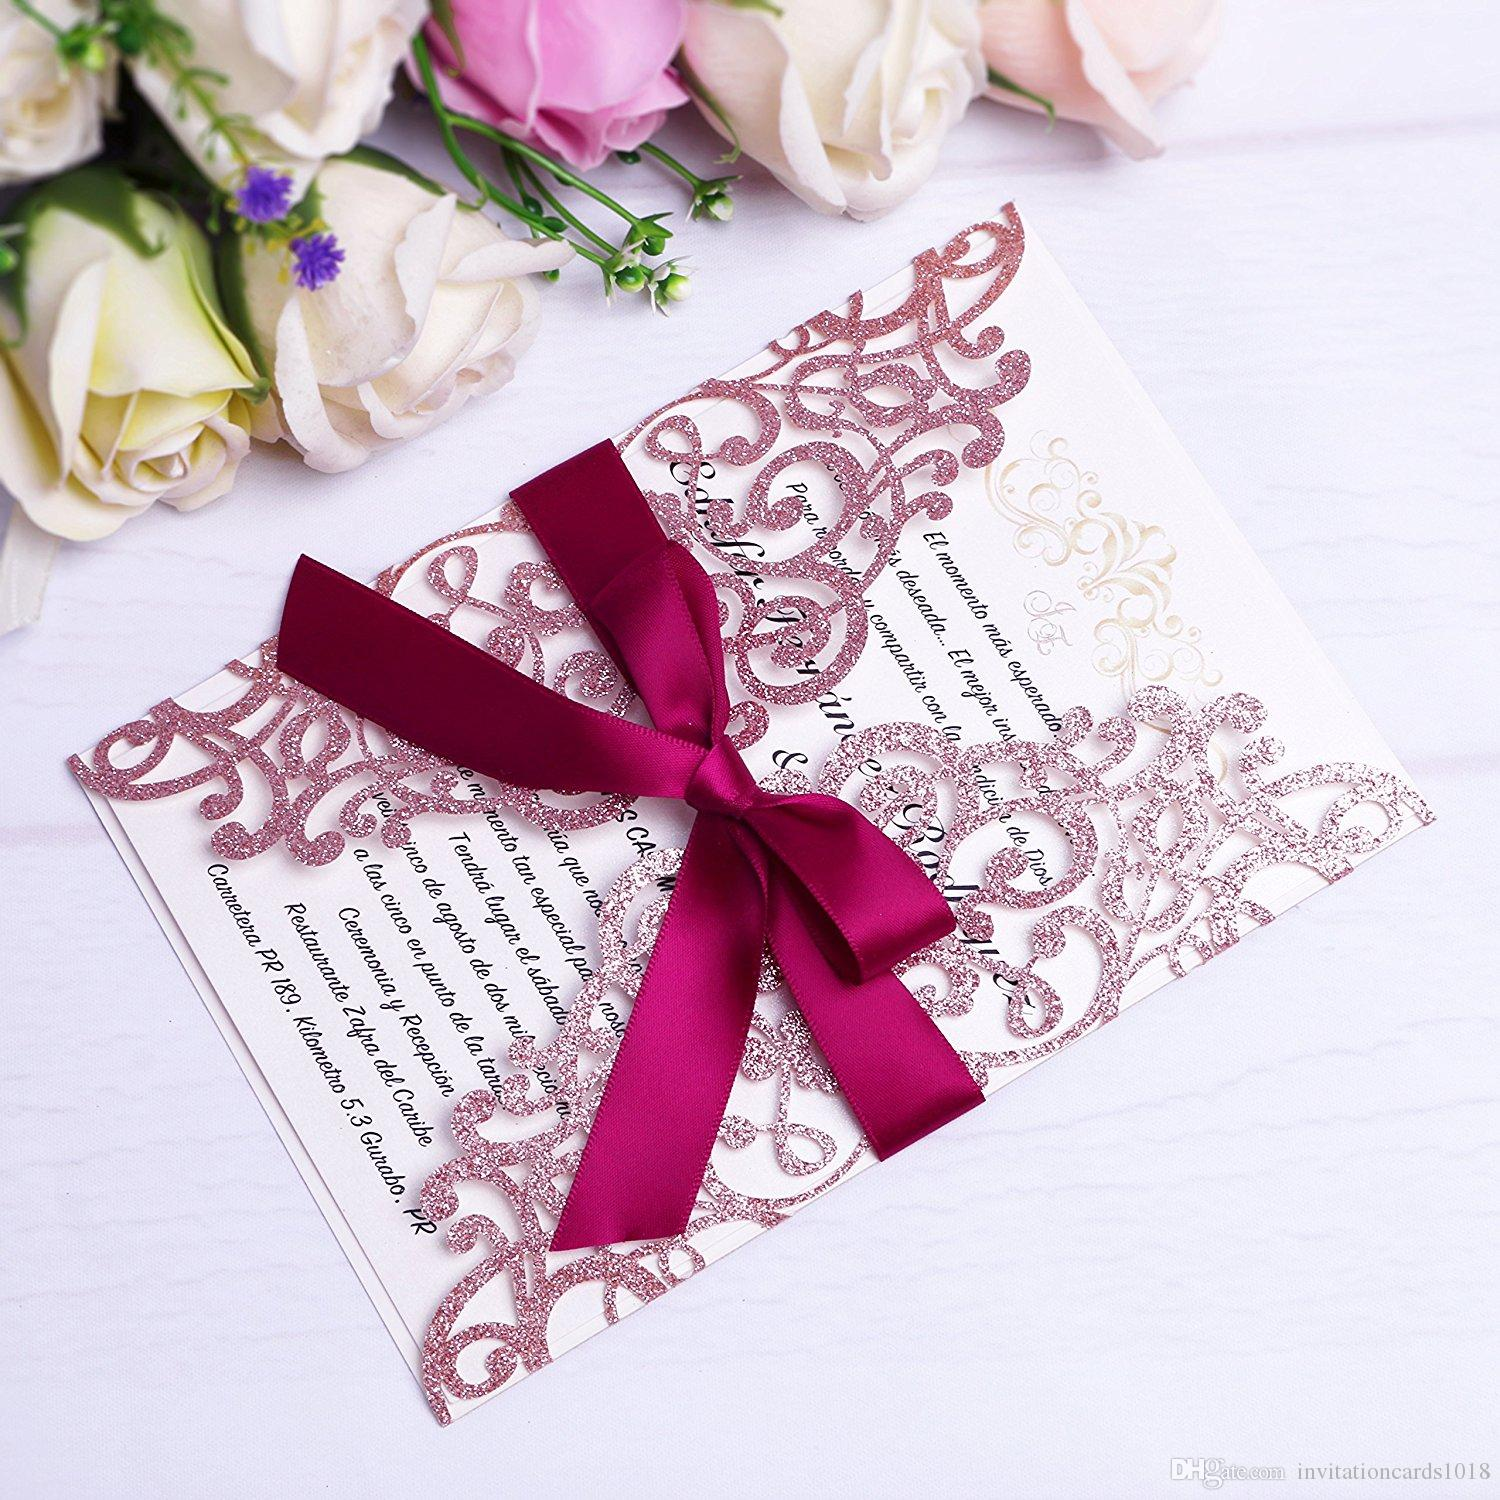 rose gold glitter laser cut invitations cards with burgundy ribbons